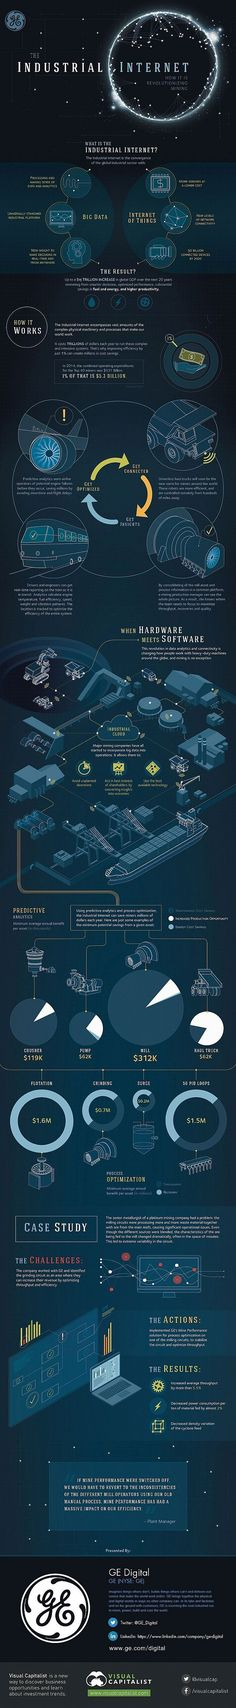 Interesting infographics about the Industrial Internet = Big Data + The Internet of Things #IoT #AllThingsTech!